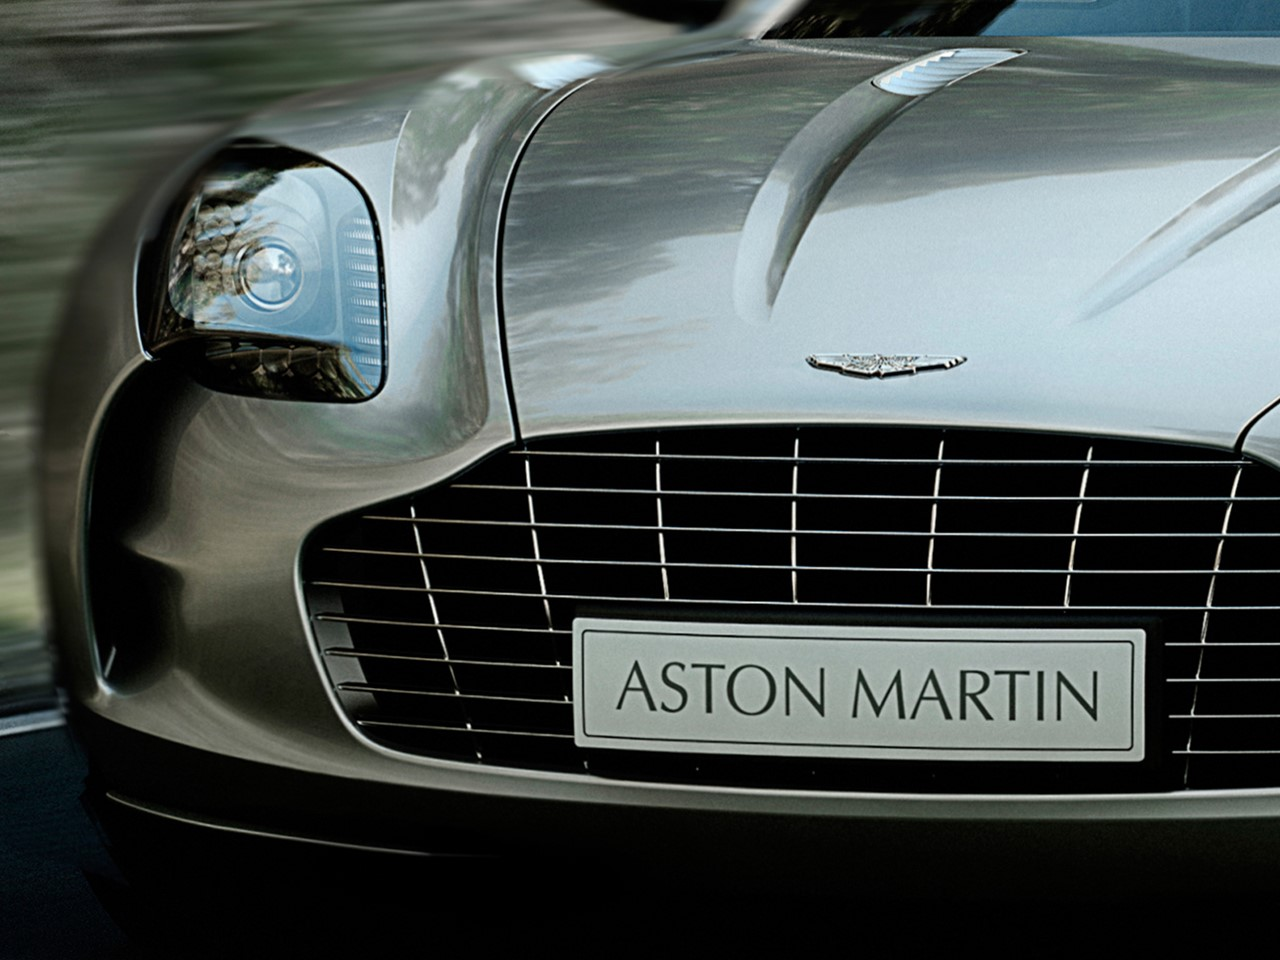 Aston Martin ONE 77 Supercar Built At A Restricted Pace Of Only 77